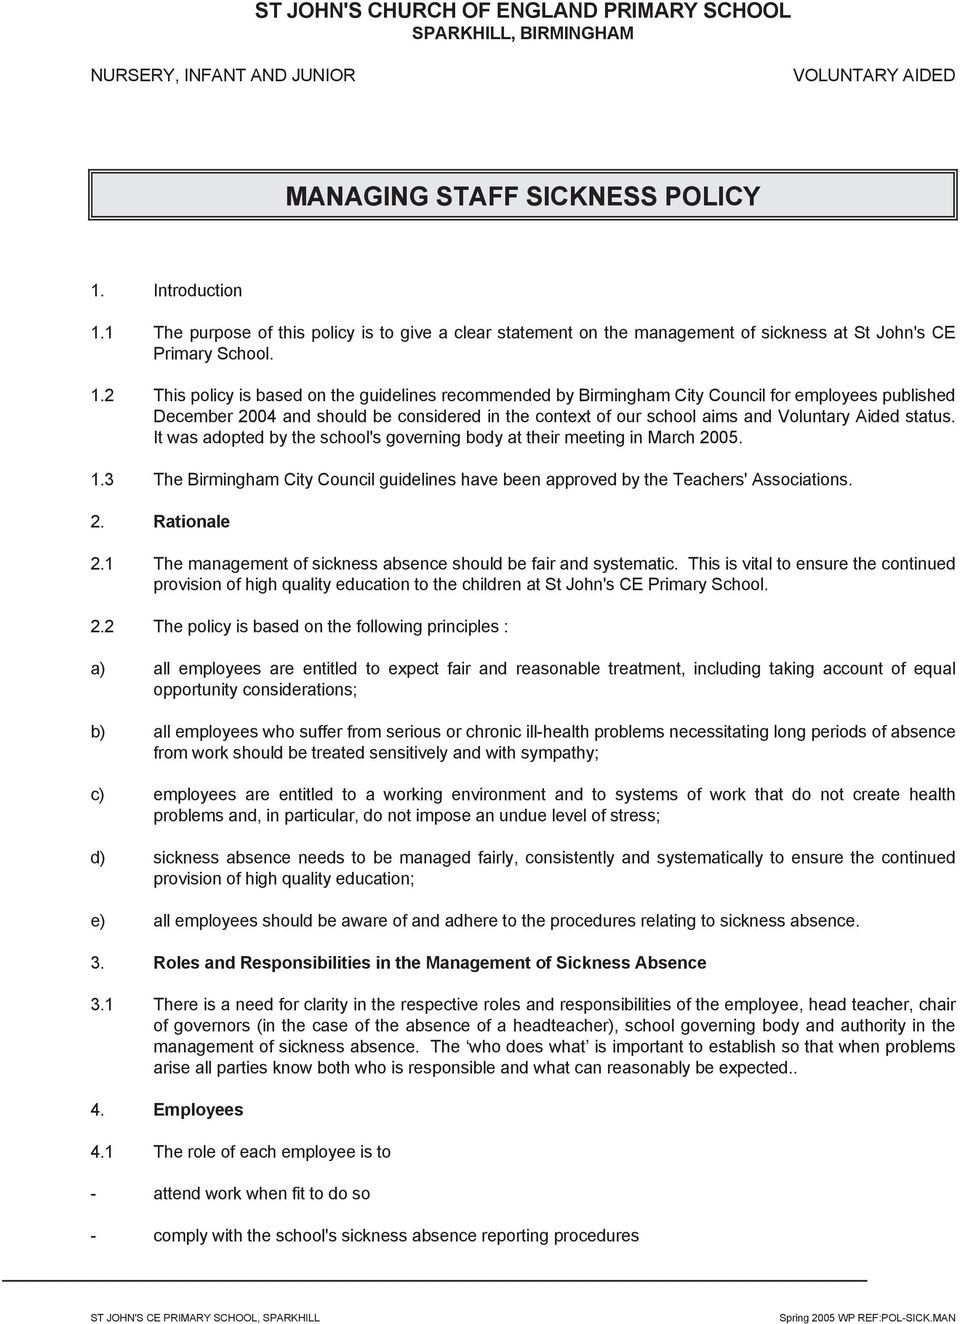 2 This policy is based on the guidelines recommended by Birmingham City Council for employees published December 2004 and should be considered in the context of our school aims and Voluntary Aided